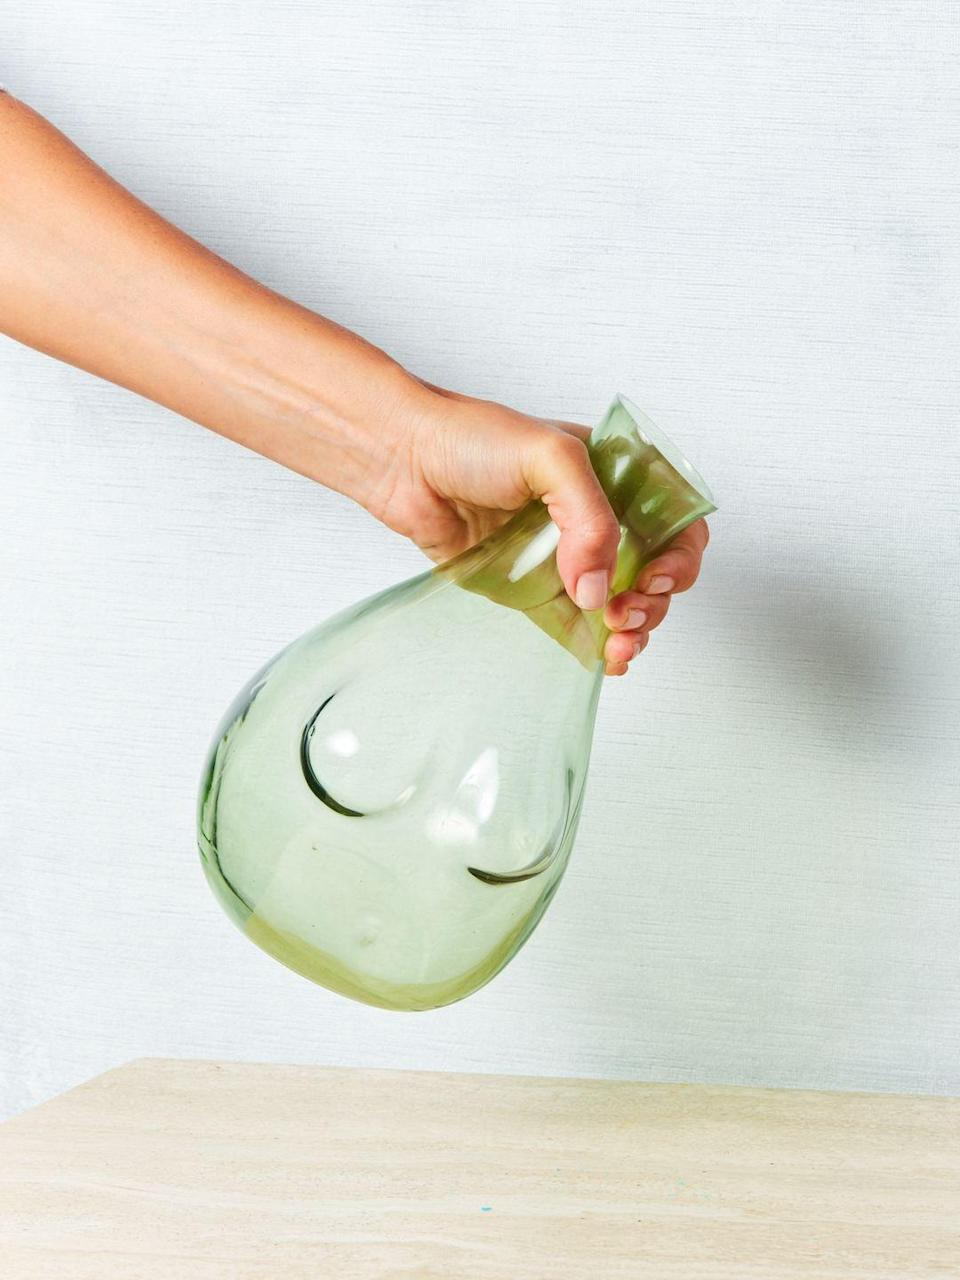 """<h2>Anna Karlin Studios Boobs Decanter</h2> <br>This one's pricey, but we couldn't resist: for a statement-making mom, these glass decanters handblown in the shape of a female torso are empowering wine-pouring perfection.<br><br><em>Shop <strong><a href=""""https://comingsoonnewyork.com/"""" rel=""""nofollow noopener"""" target=""""_blank"""" data-ylk=""""slk:Coming Soon"""" class=""""link rapid-noclick-resp"""">Coming Soon</a></strong></em><br><br><strong>Anna Karlin Studios</strong> Boobs Decanter, $, available at <a href=""""https://go.skimresources.com/?id=30283X879131&url=https%3A%2F%2Fcomingsoonnewyork.com%2Fproducts%2Fboobs-decanter"""" rel=""""nofollow noopener"""" target=""""_blank"""" data-ylk=""""slk:Coming Soon"""" class=""""link rapid-noclick-resp"""">Coming Soon</a><br><br><br>"""